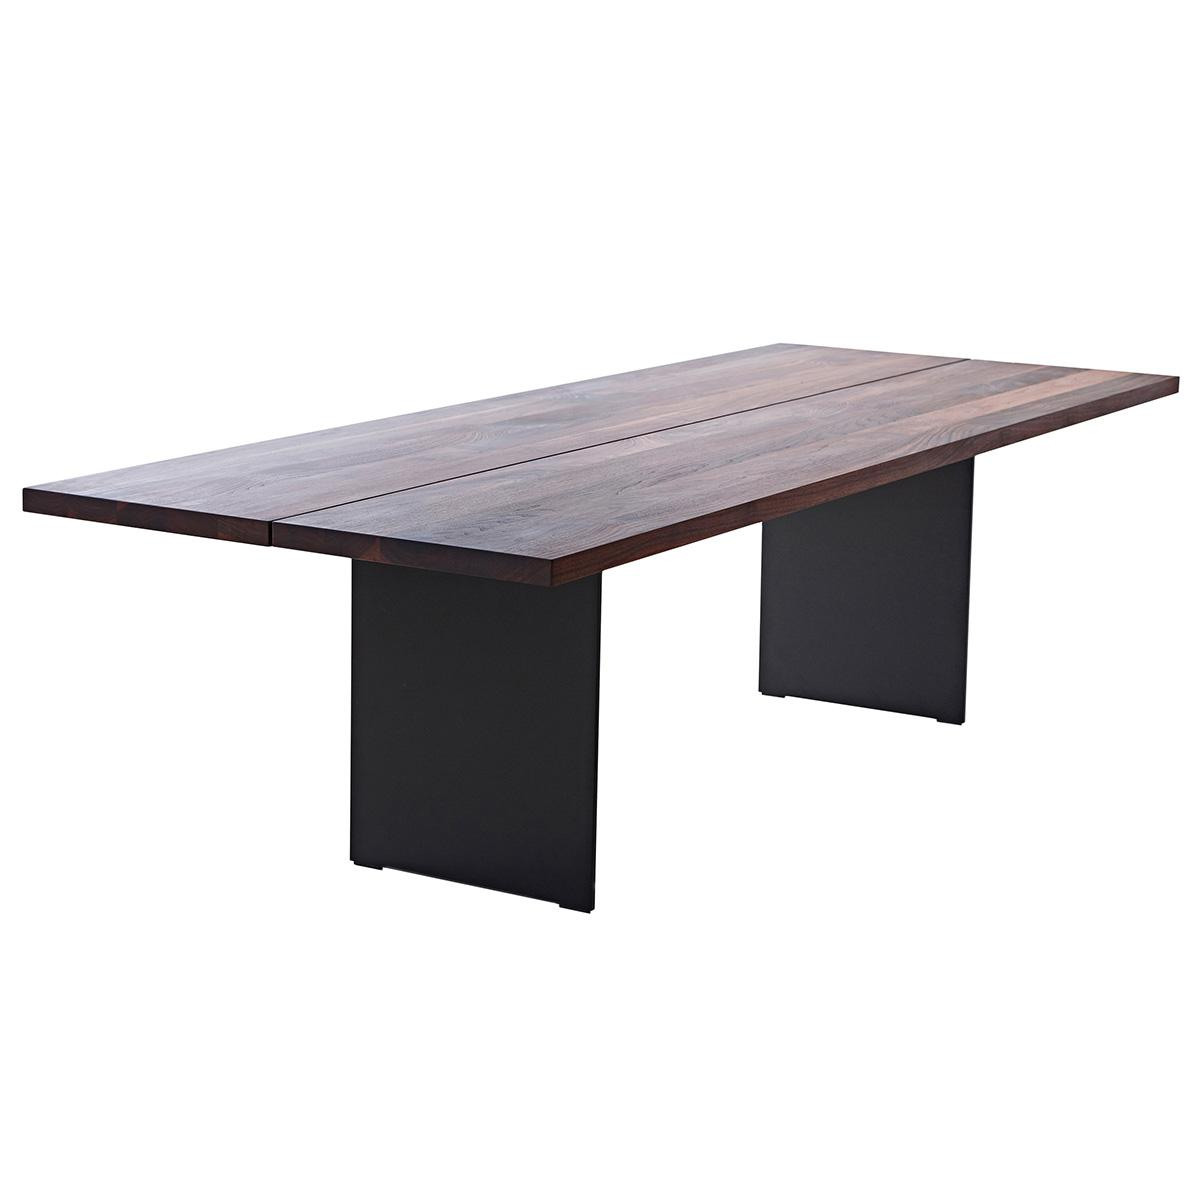 1200_0000_dk3-3_Table_walnut_black_free_high